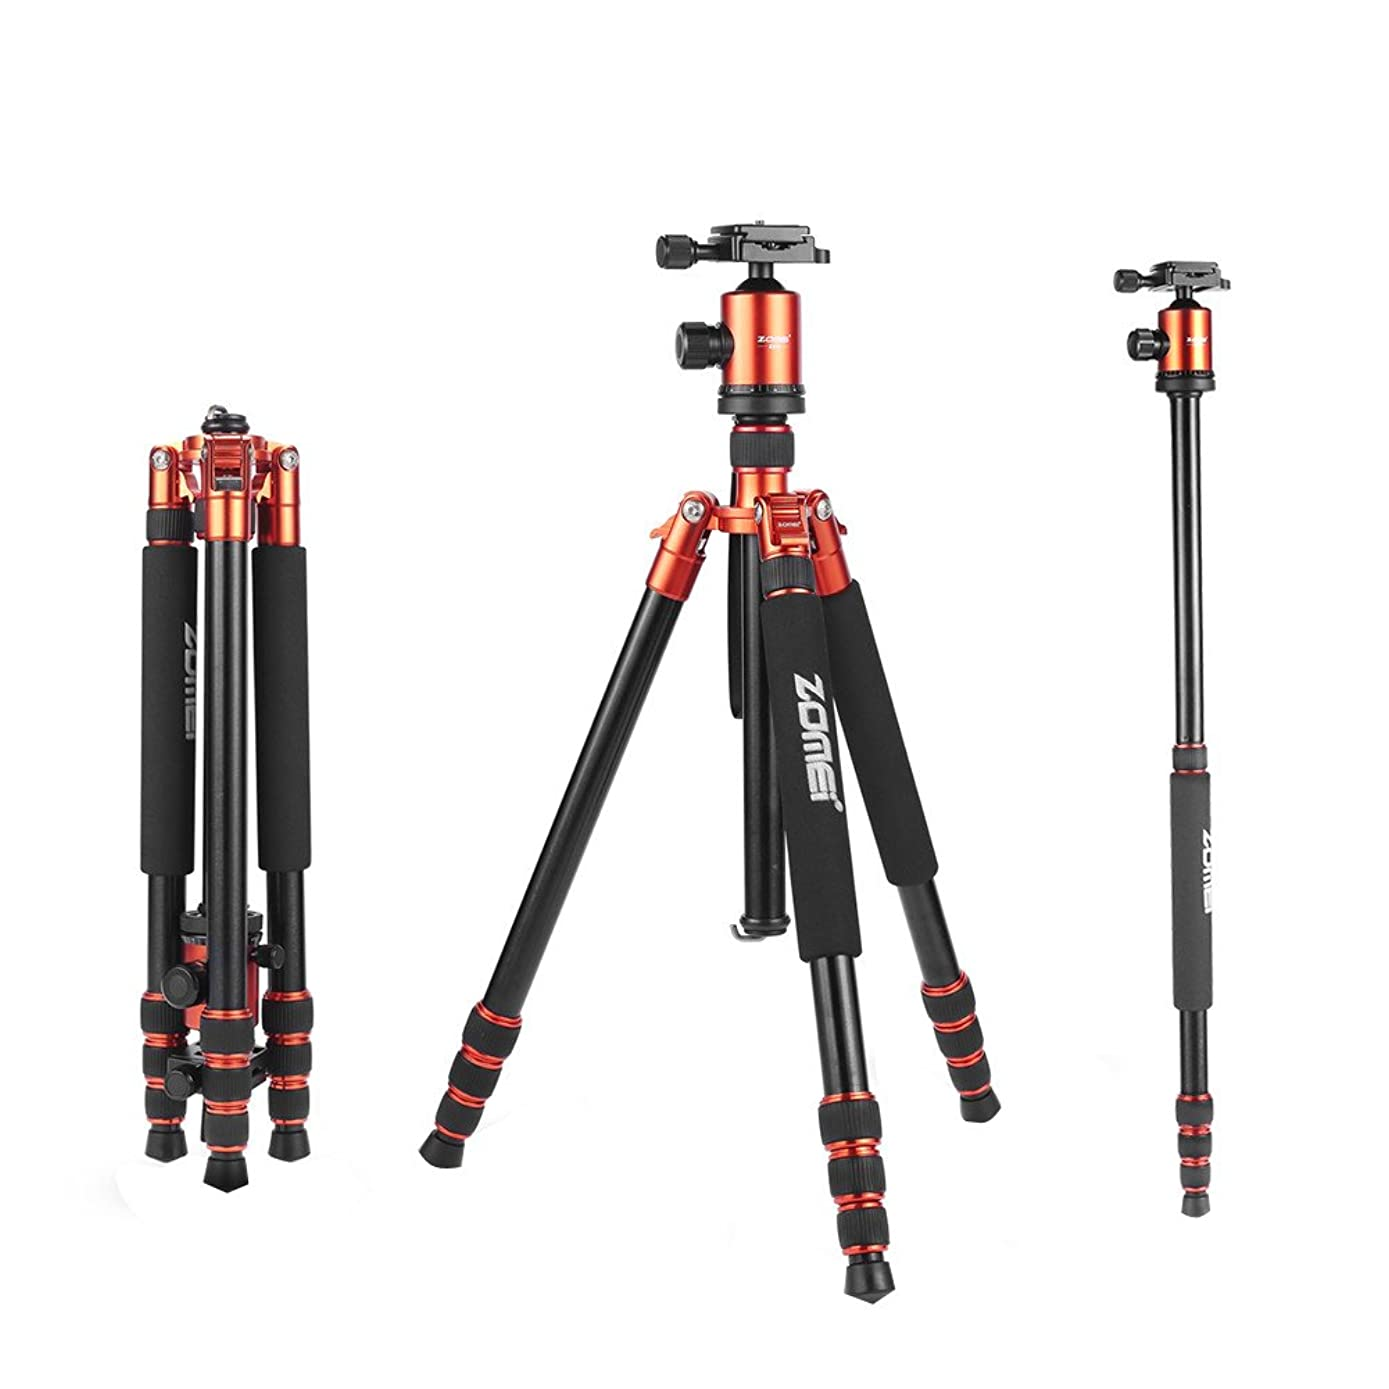 ZOMEI Tripod,Camera Tripod,Heavy Duty Camera Tripod Camera Travel Z818 Tripod Aluminium Alloy Monopod with 360 Panorama Ball Head Quick Release Plate Ball for DSLR Canon Sony Nikon Cameras(Orange)